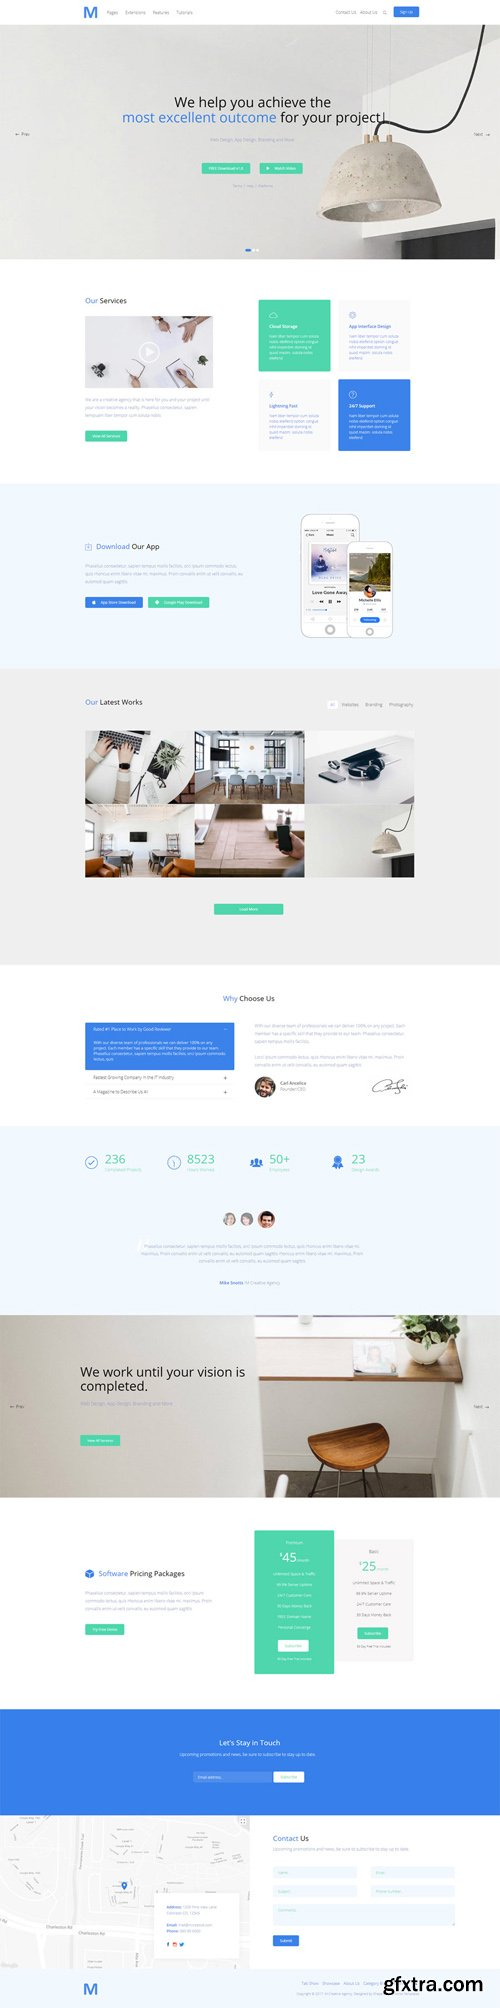 Shape5 - M Creative Agency v1.0.2 - Joomla Template